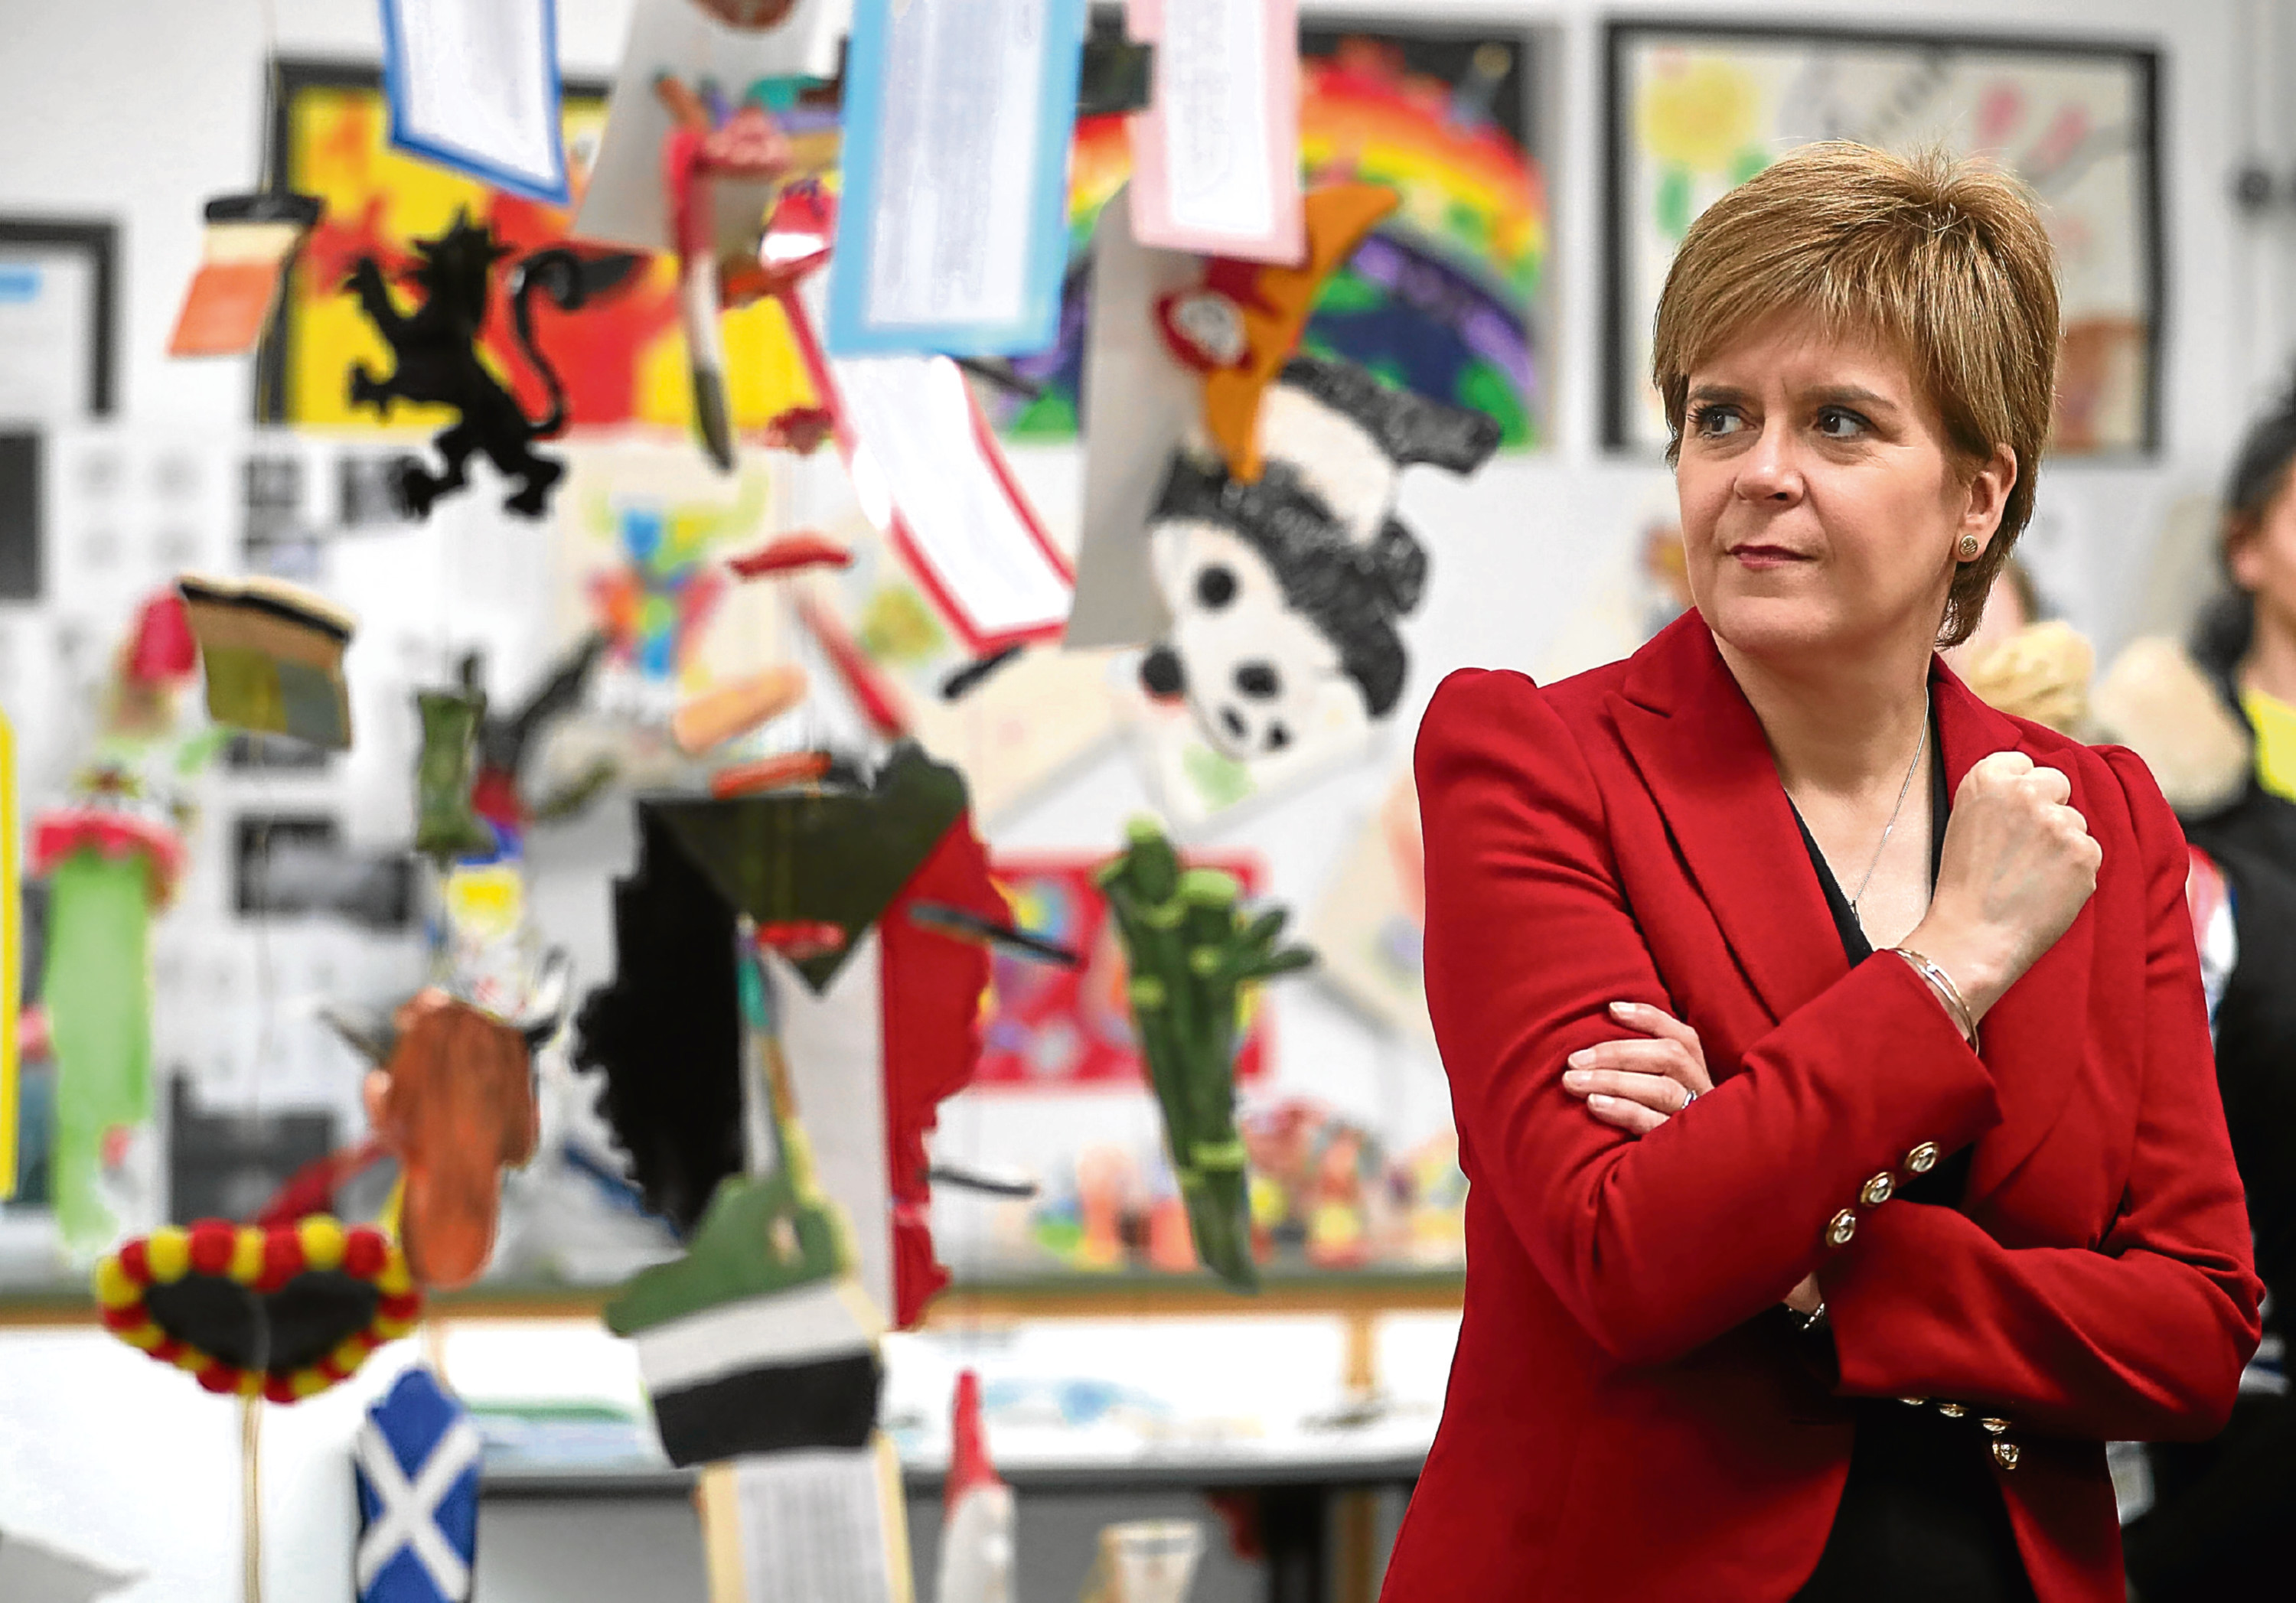 First Minister Nicola Sturgeon during a visit to Castlebrae Community High School in Edinburgh where she met teachers and pupils who have been part of a three-year residency programme with the Edinburgh International Festival. PRESS ASSOCIATION Photo. Picture date: Friday August 18, 2017. See PA story SCOTLAND School. Photo credit should read: Jane Barlow/PA Wire